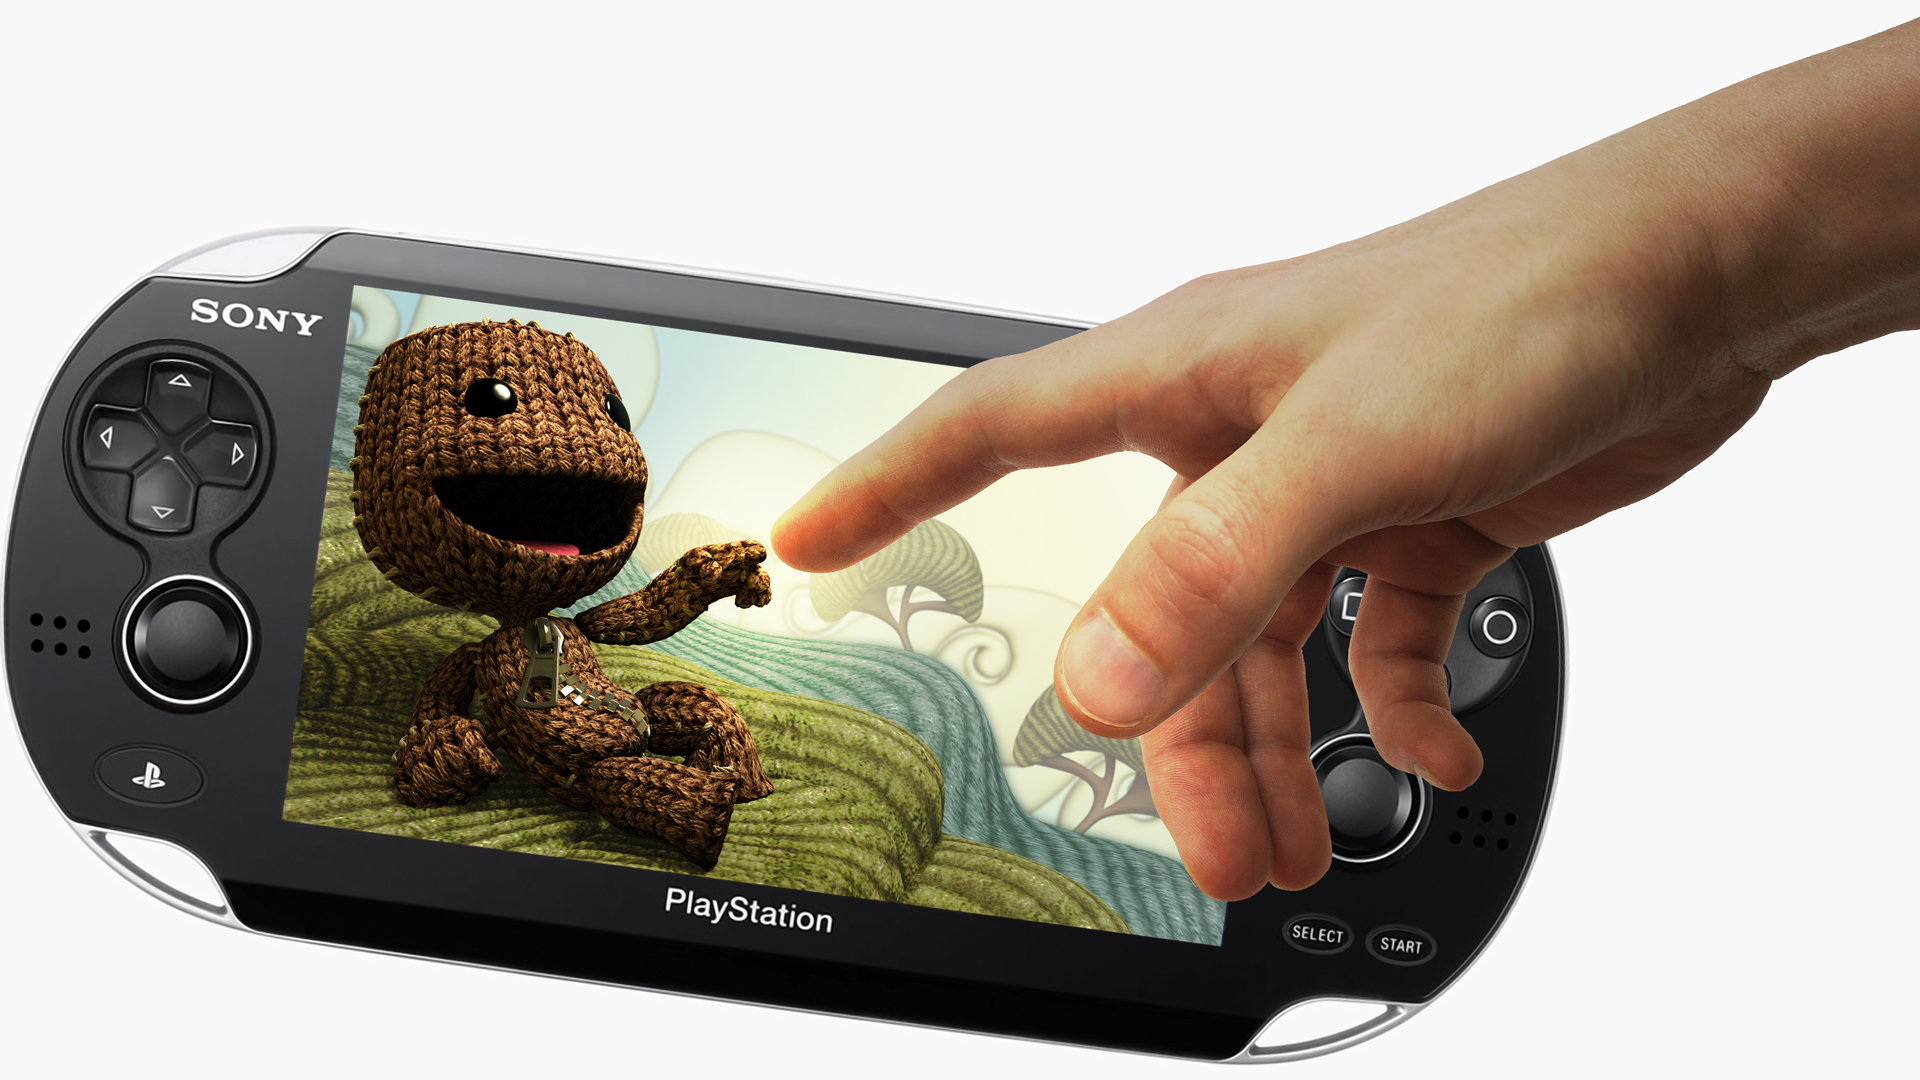 I Have a PS Vita and Know Absolutely Nothing To Do With It